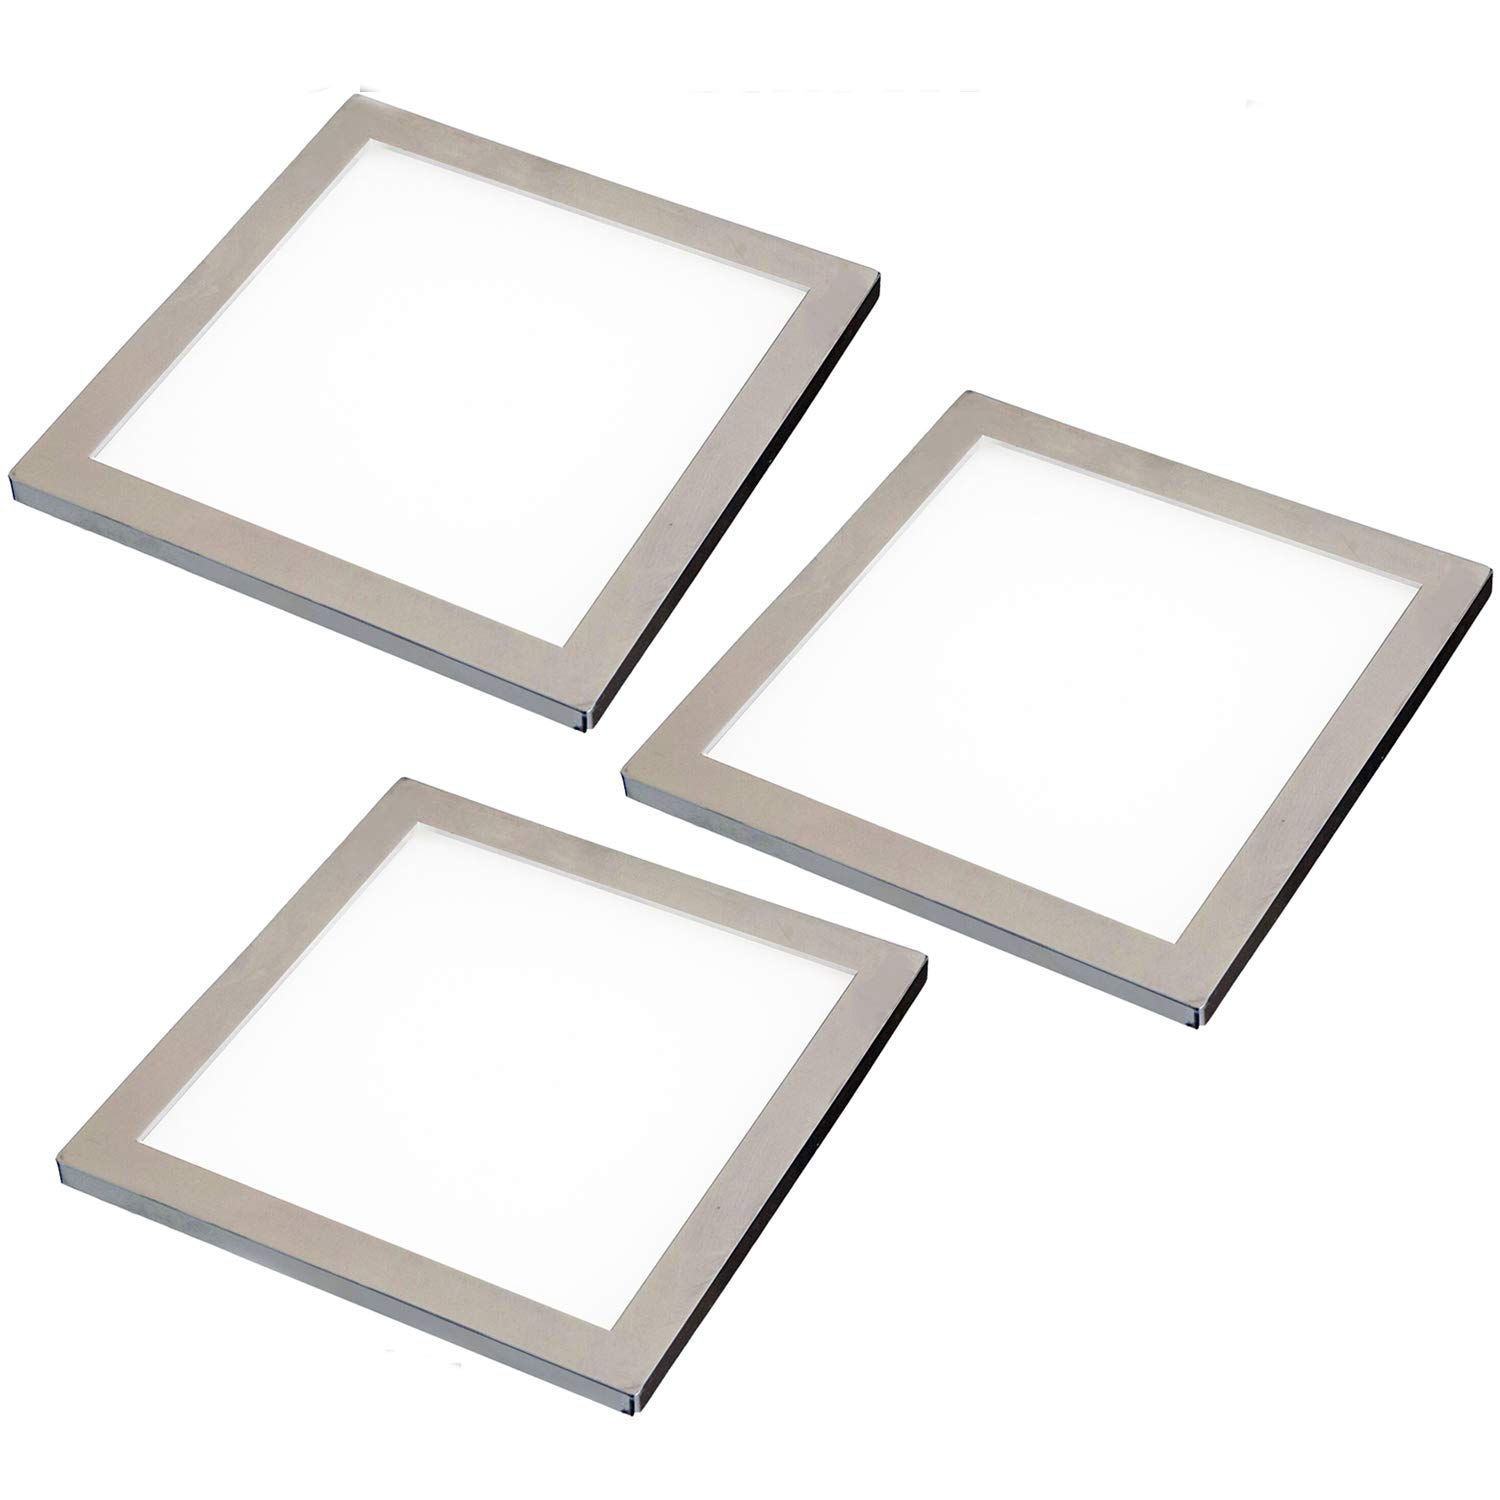 3X LED Under Cabinet/Cupboard Square Panel Kitchen Light & Driver Kit - Brushed Nickel Finish - Natural/Cool White Lighting Beam - Recessed/Flush Mounted - Counter/Worktop Down Lights - Loops